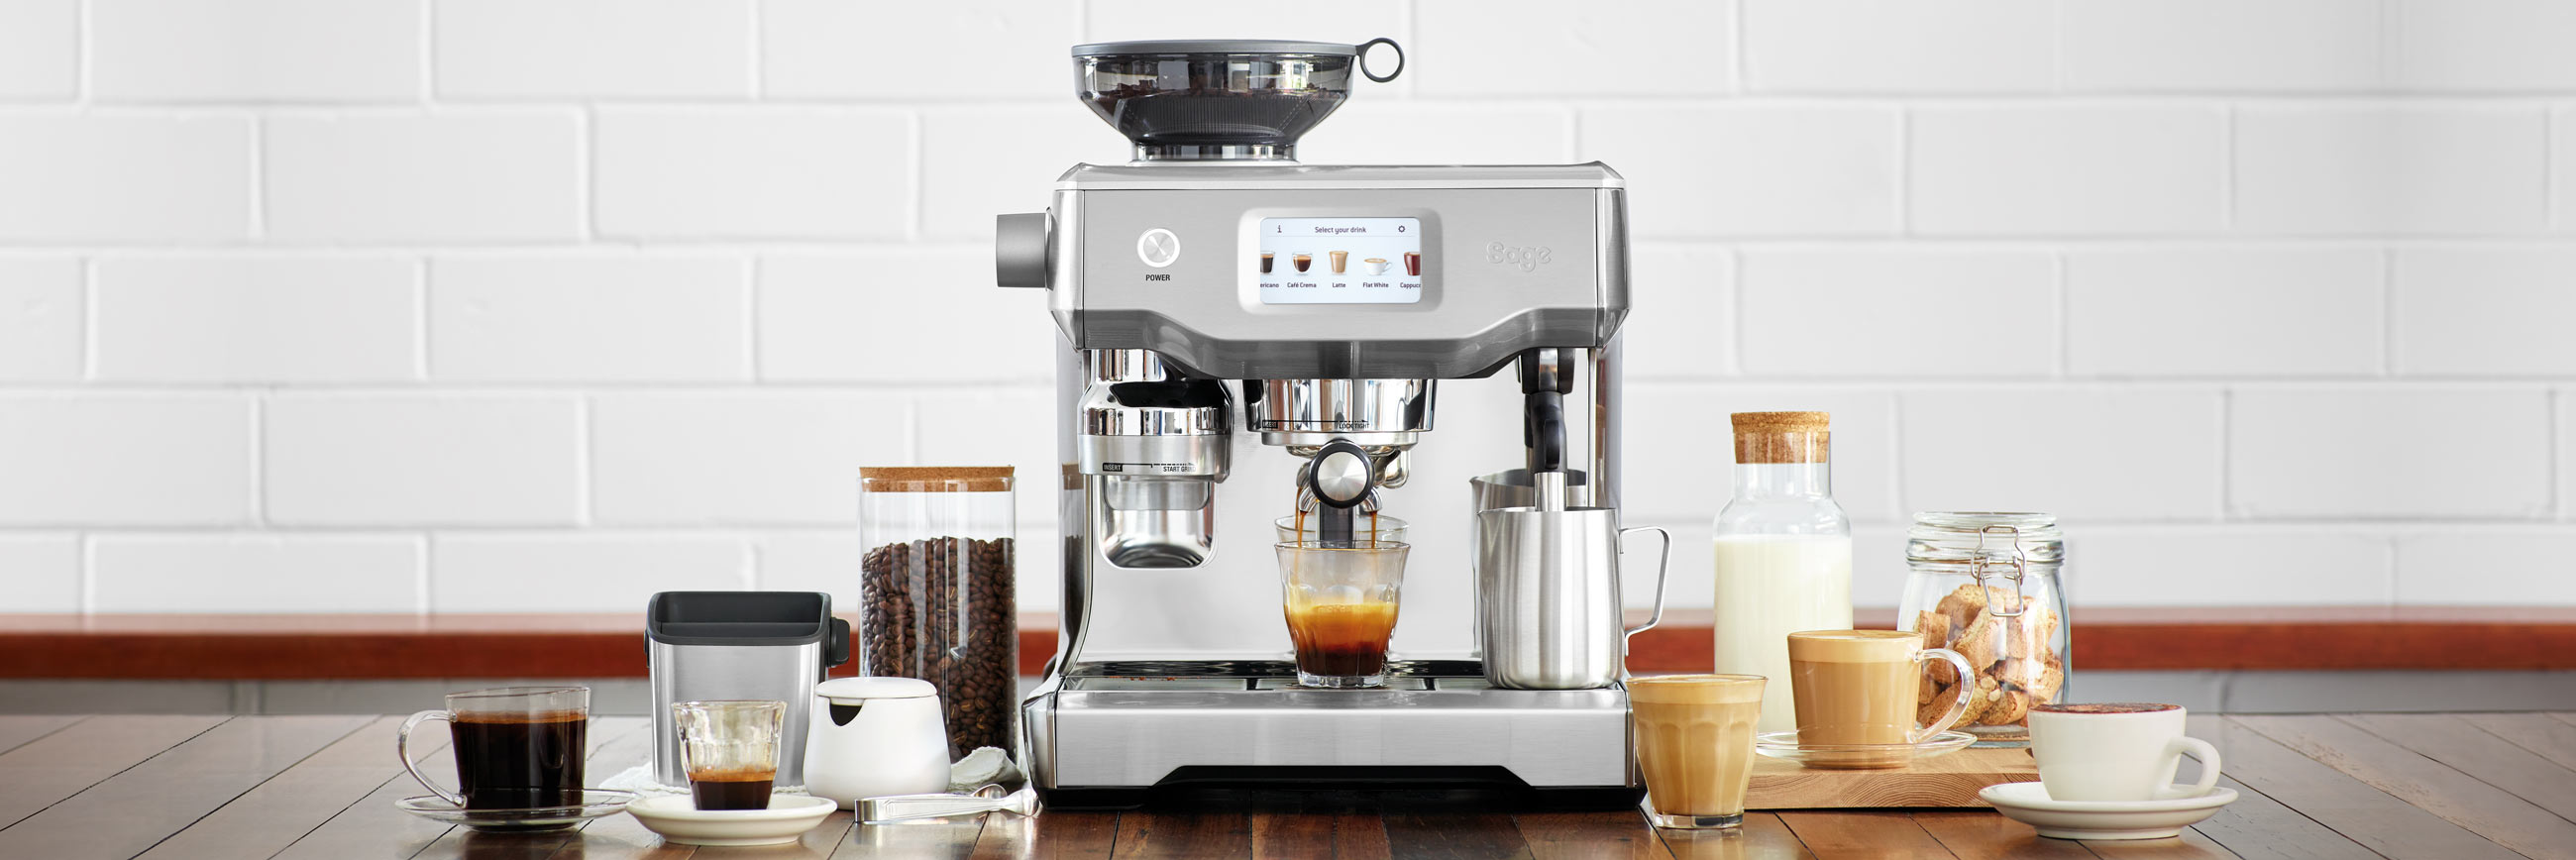 the Oracle Touch Espresso Machine in Brushed Stainless Steel